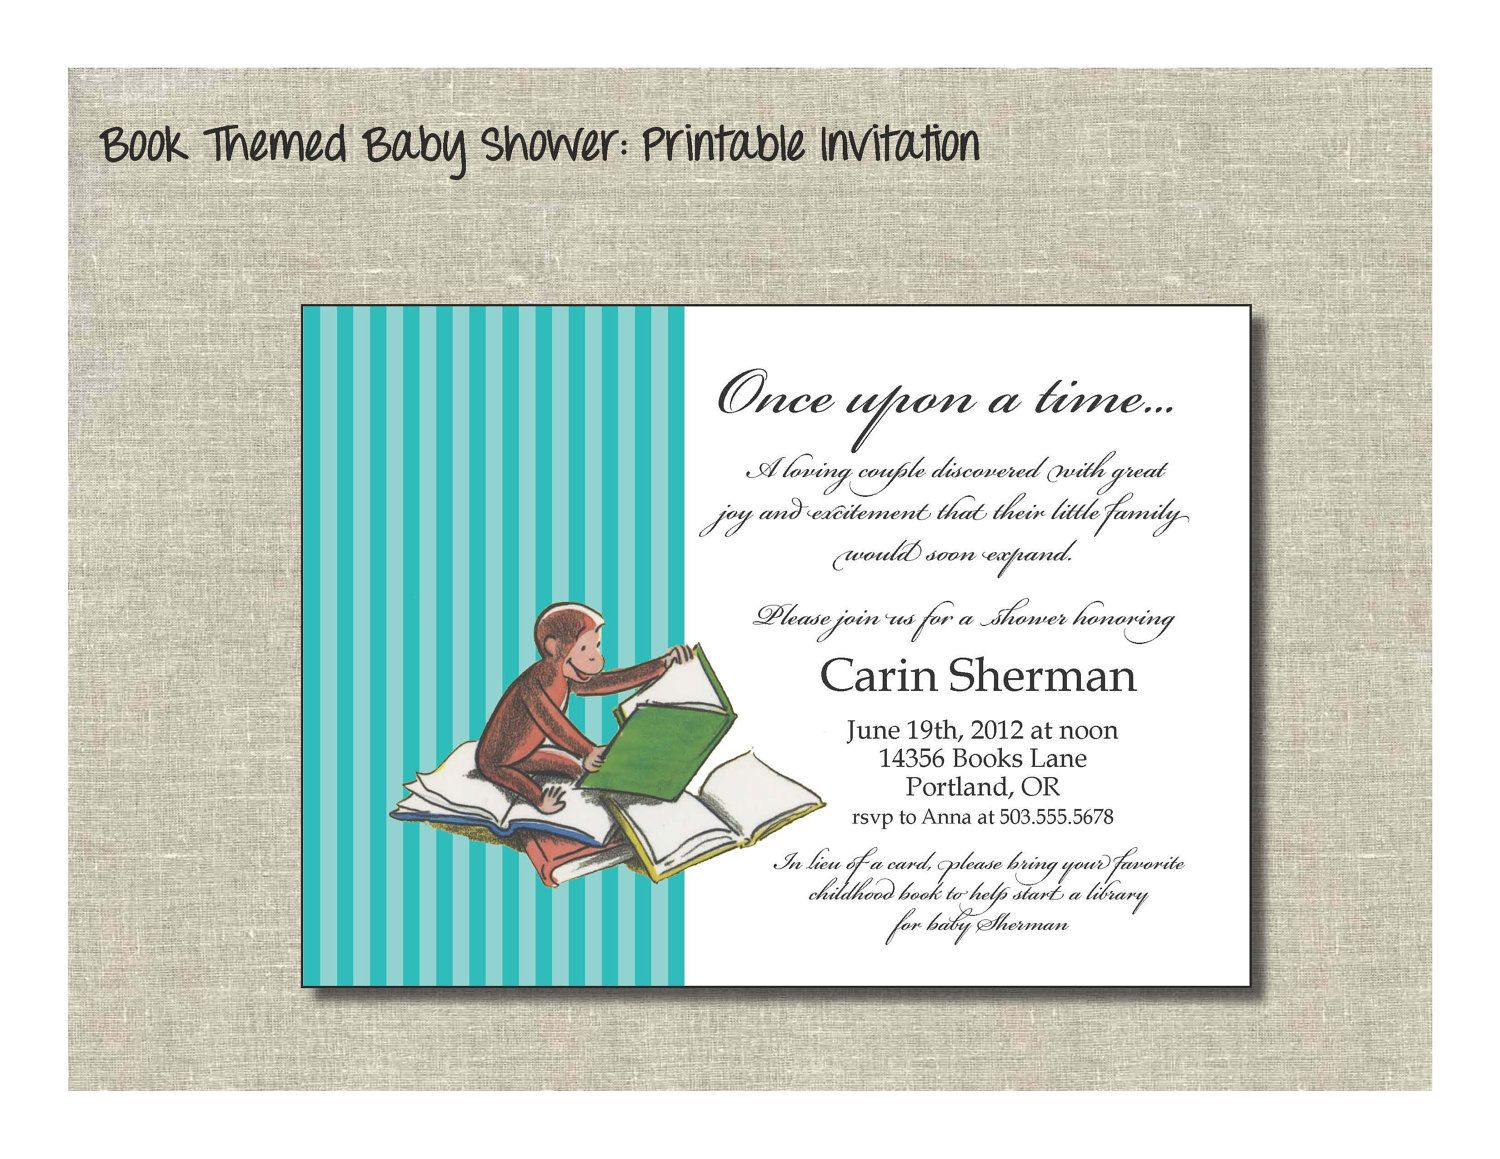 Book themed baby shower printable invitation wcurious george book themed baby shower printable invitation wcurious george 1200 via etsy filmwisefo